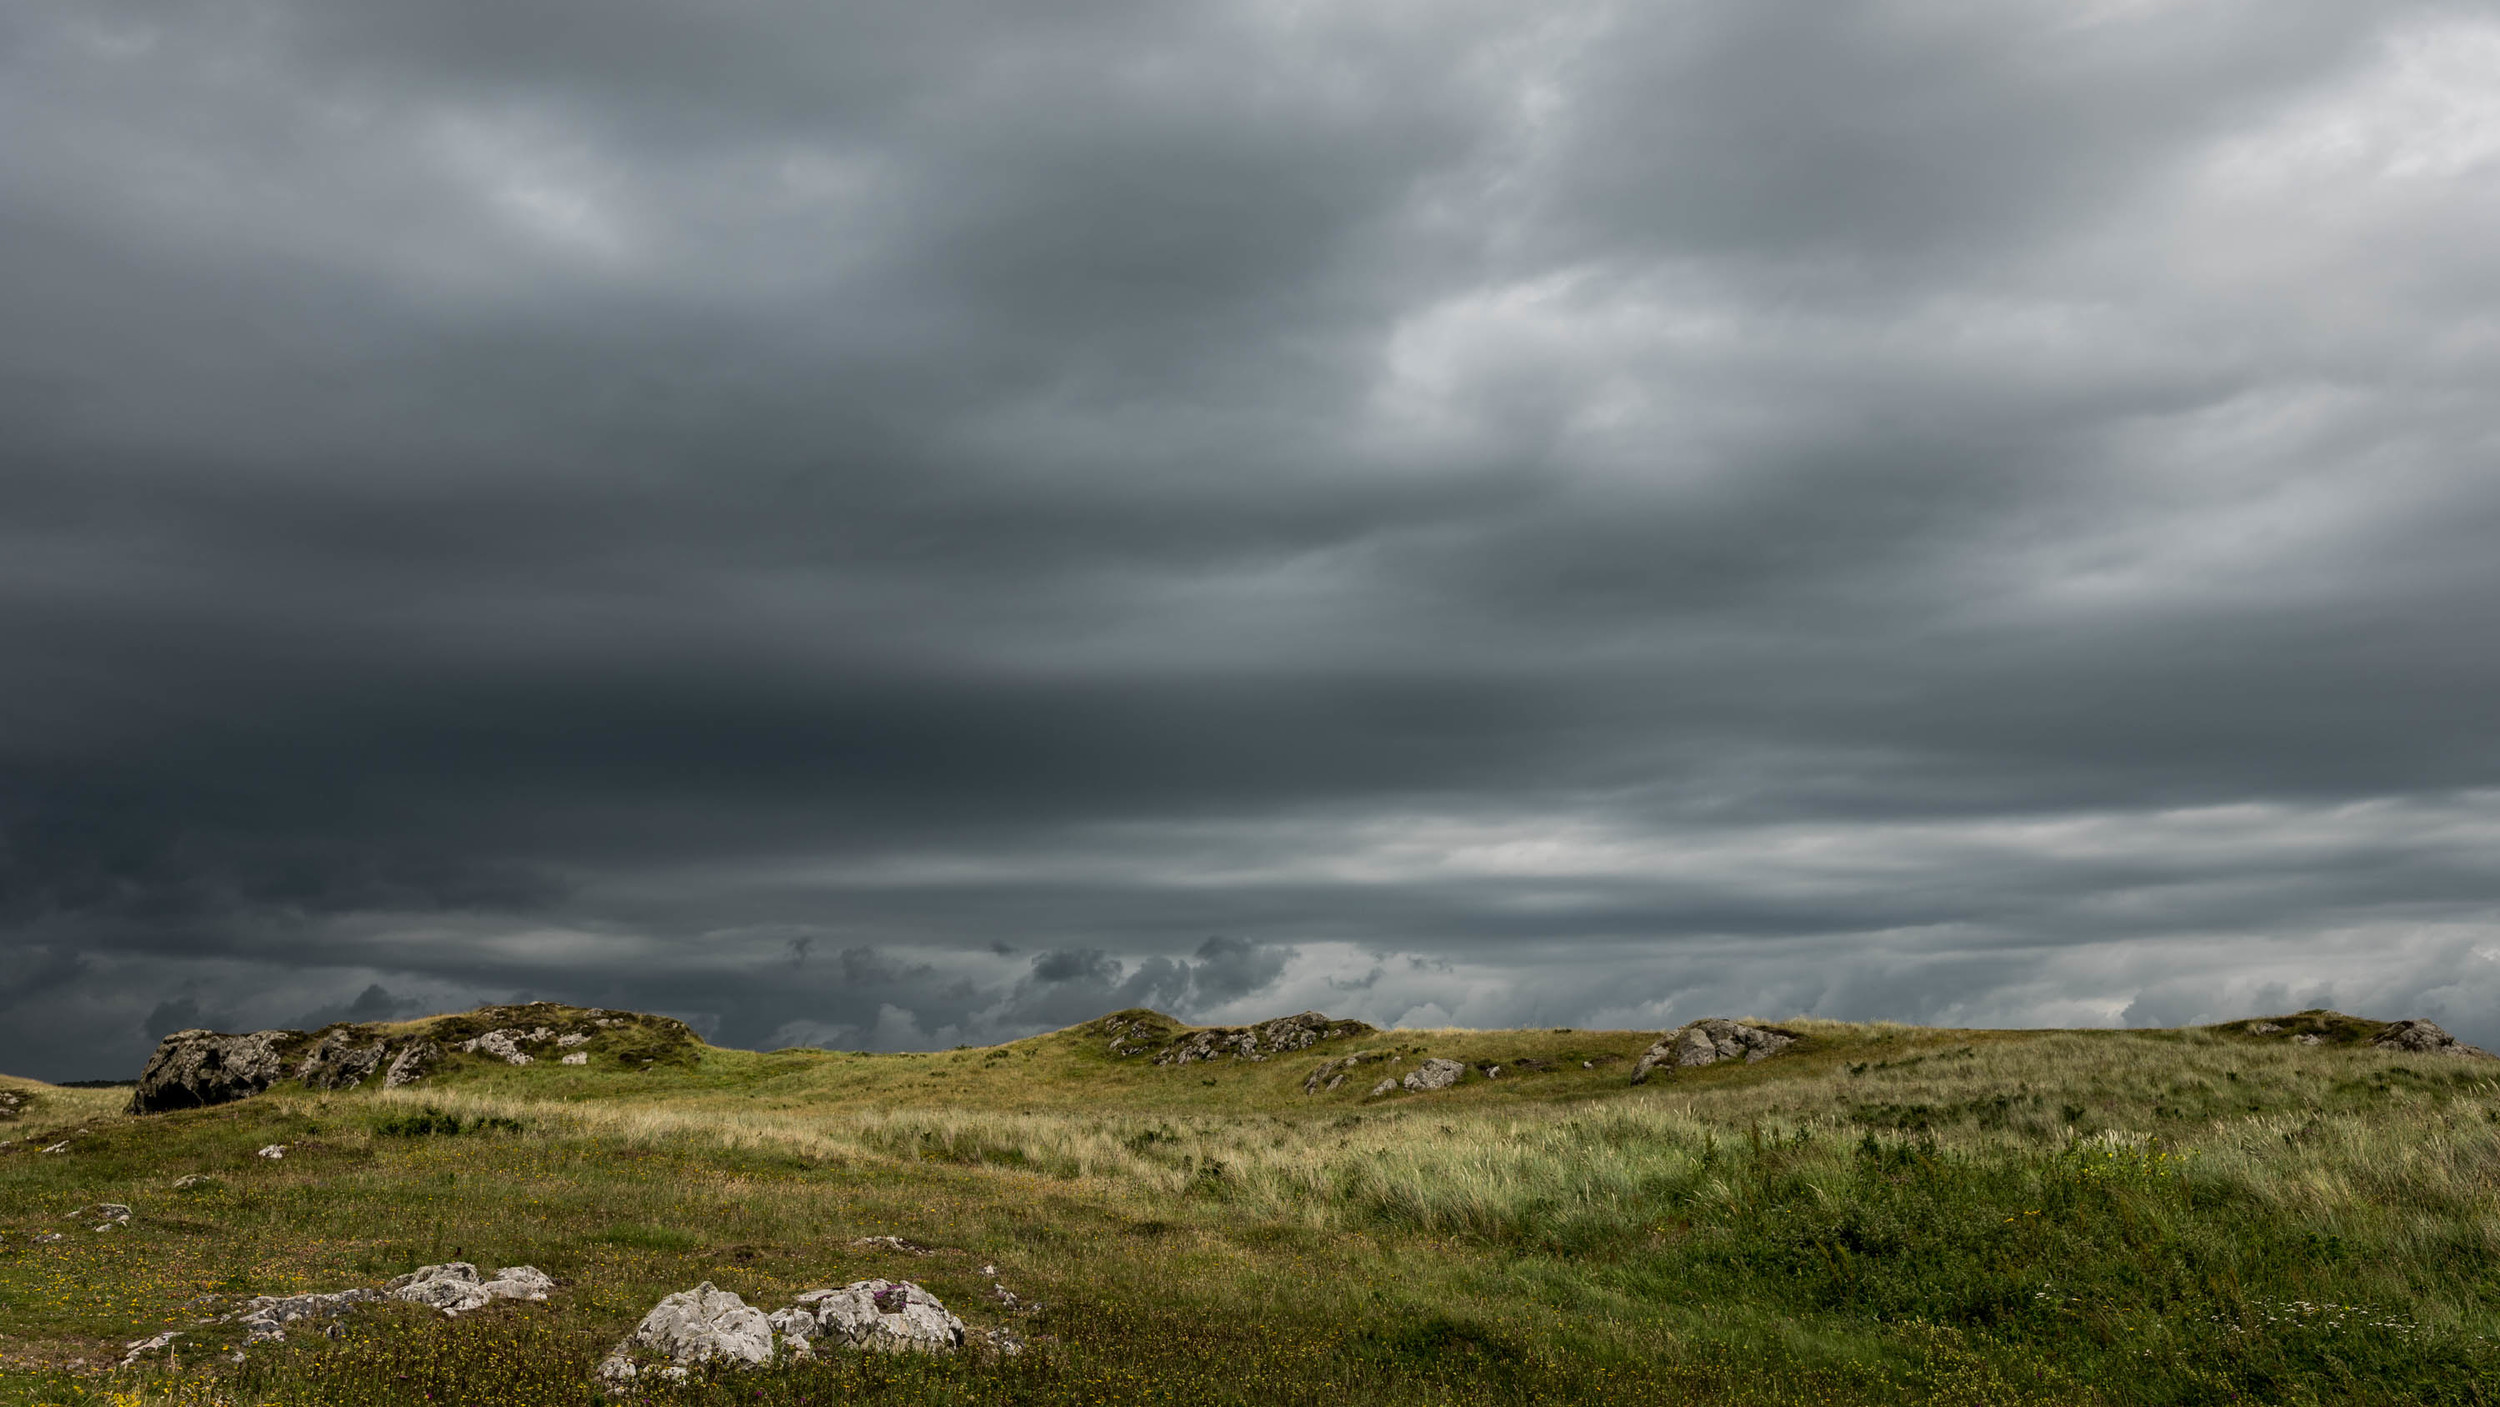 Dark storm clouds approach over Llanddwyn Island